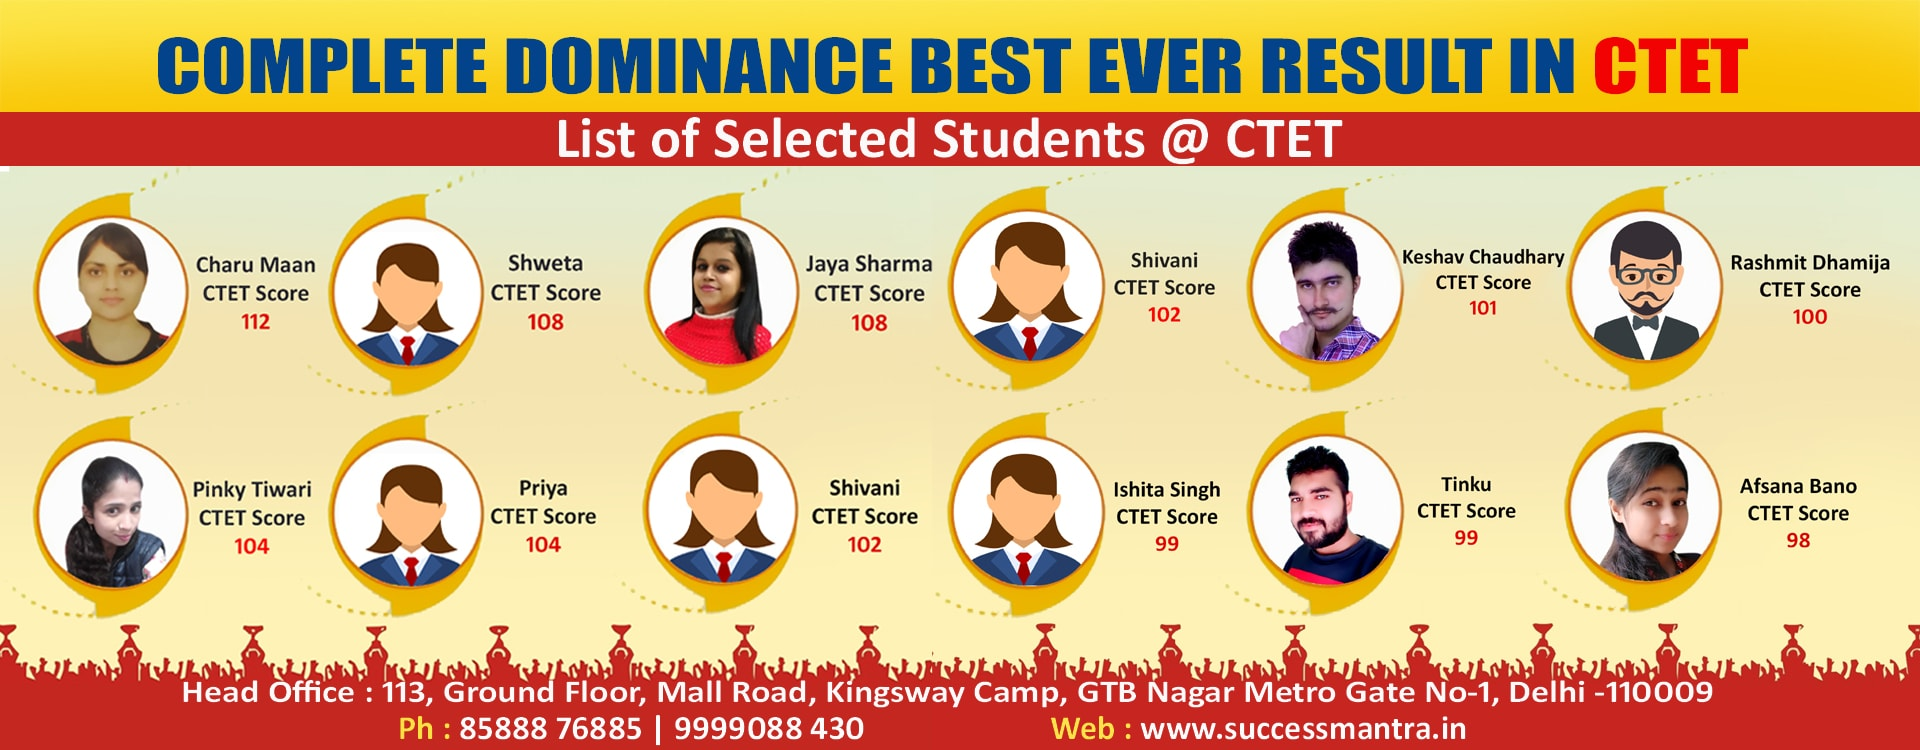 CTET_Coaching_in_Delhi_Success_Mantra_GTB_Nagar_-_6.JPG